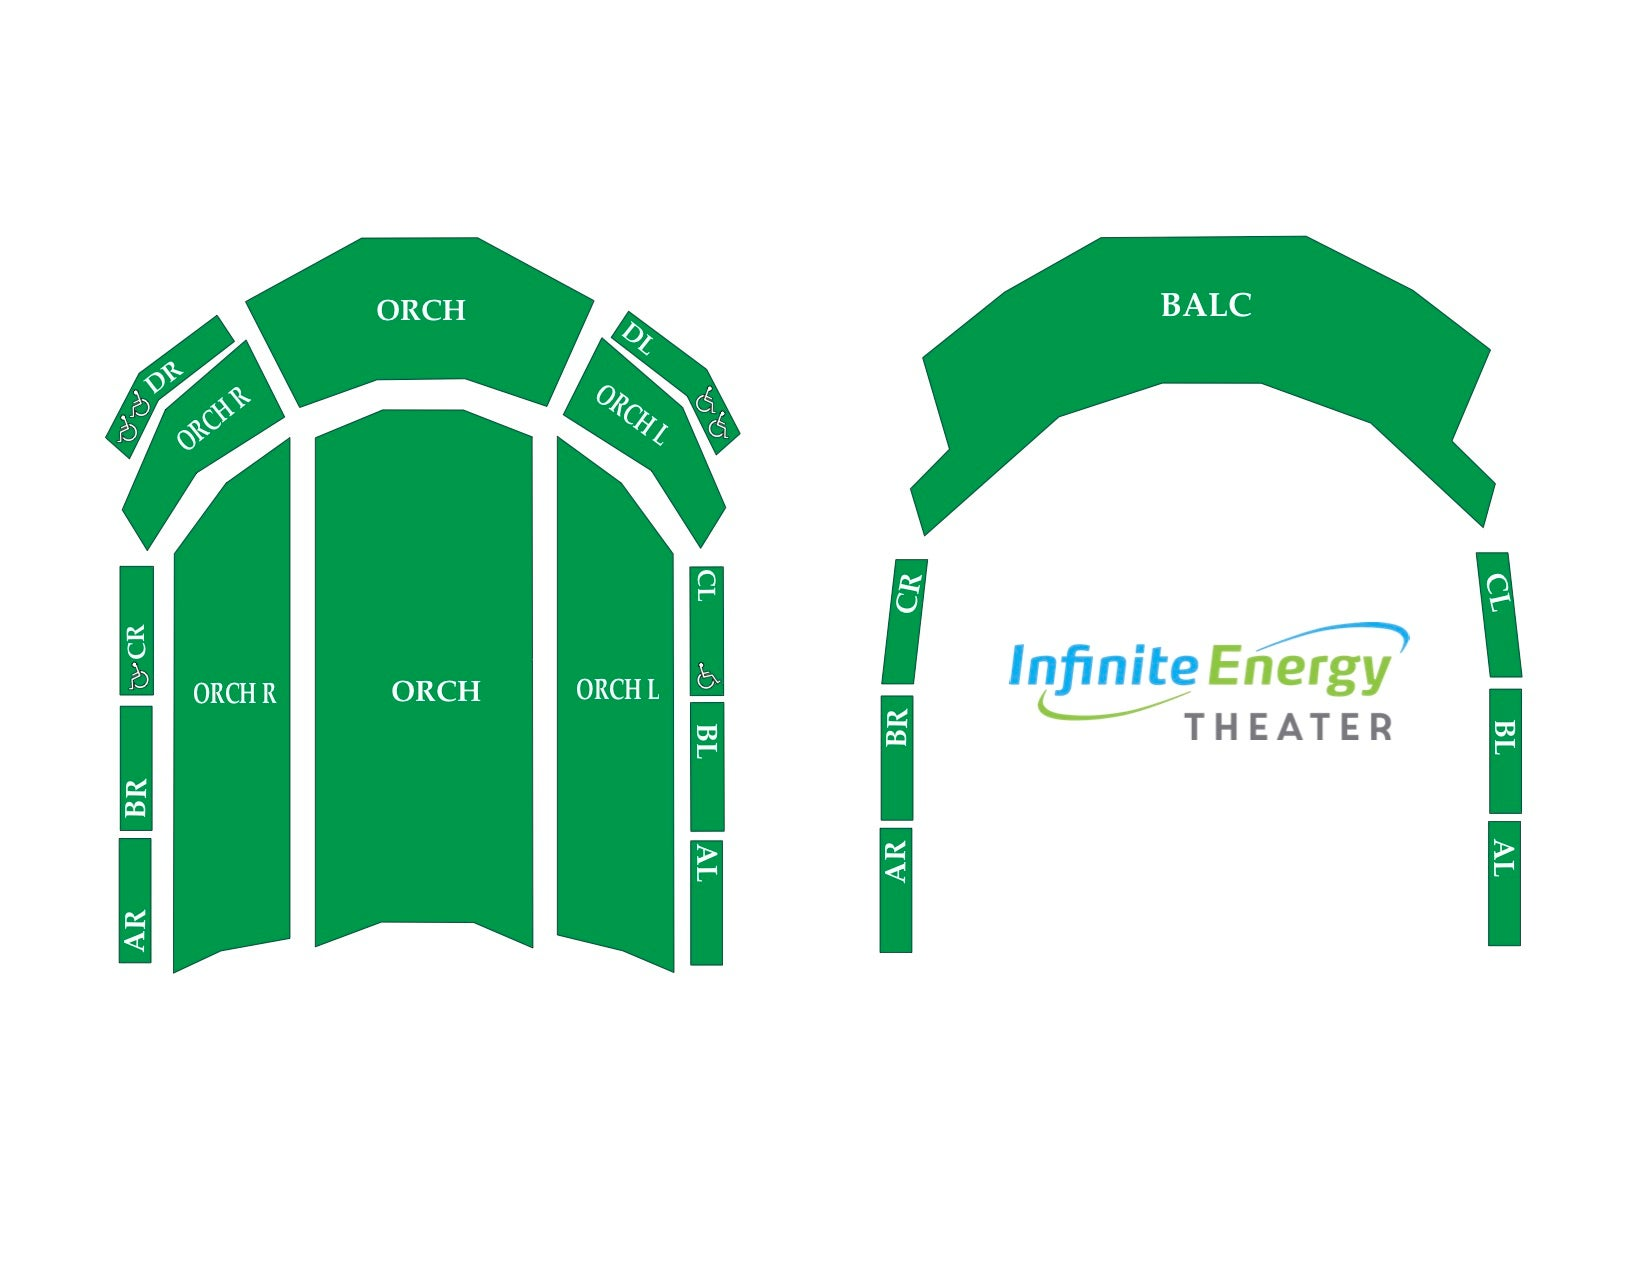 Generic THEATER Map